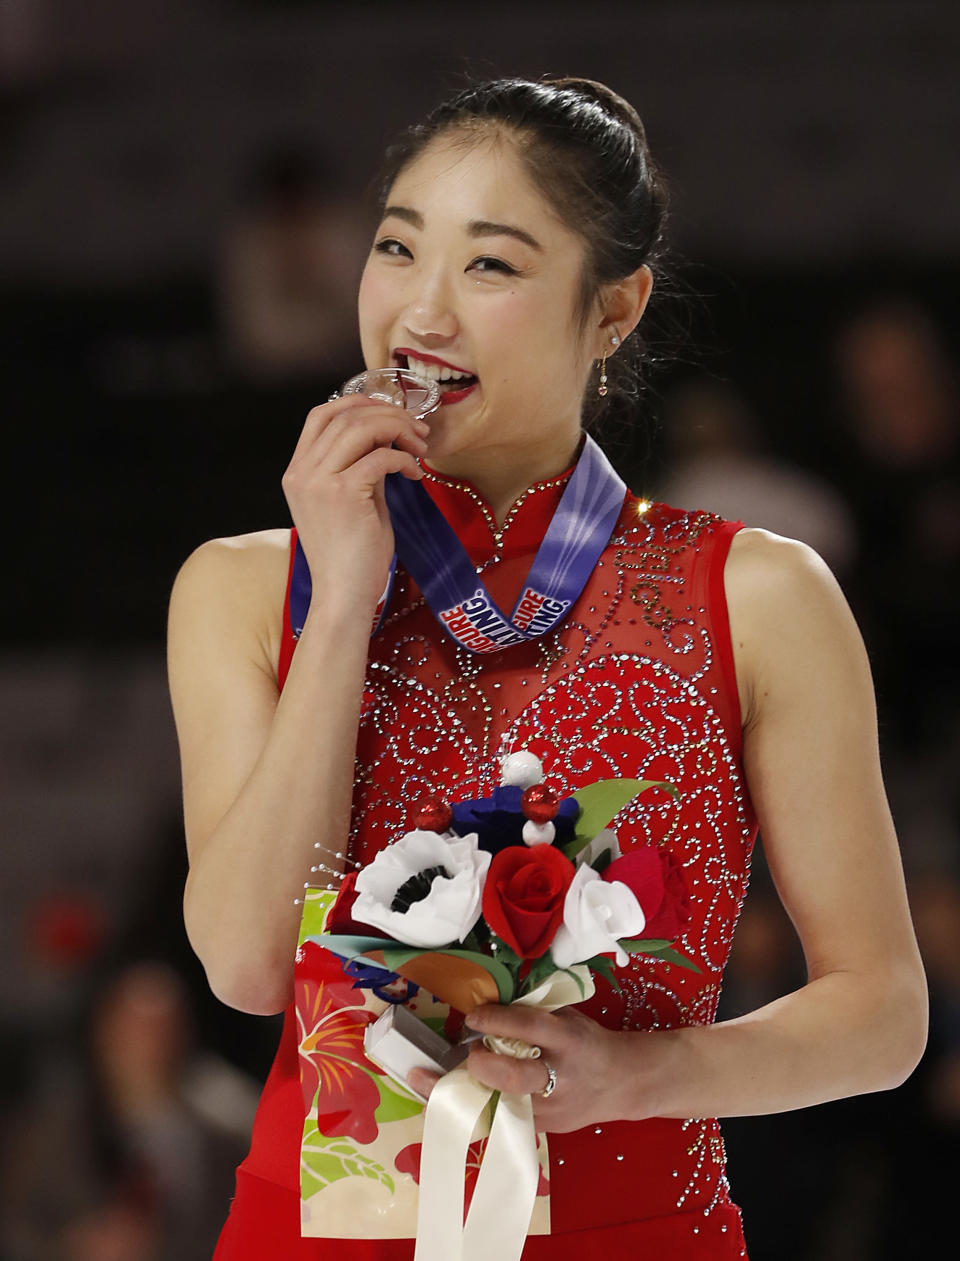 Mirai Nagasu poses after finishing second in the women's free skate event at the U.S. Figure Skating Championships in San Jose, Calif., on Jan. 5, 2018. (AP Photo/Tony Avelar)